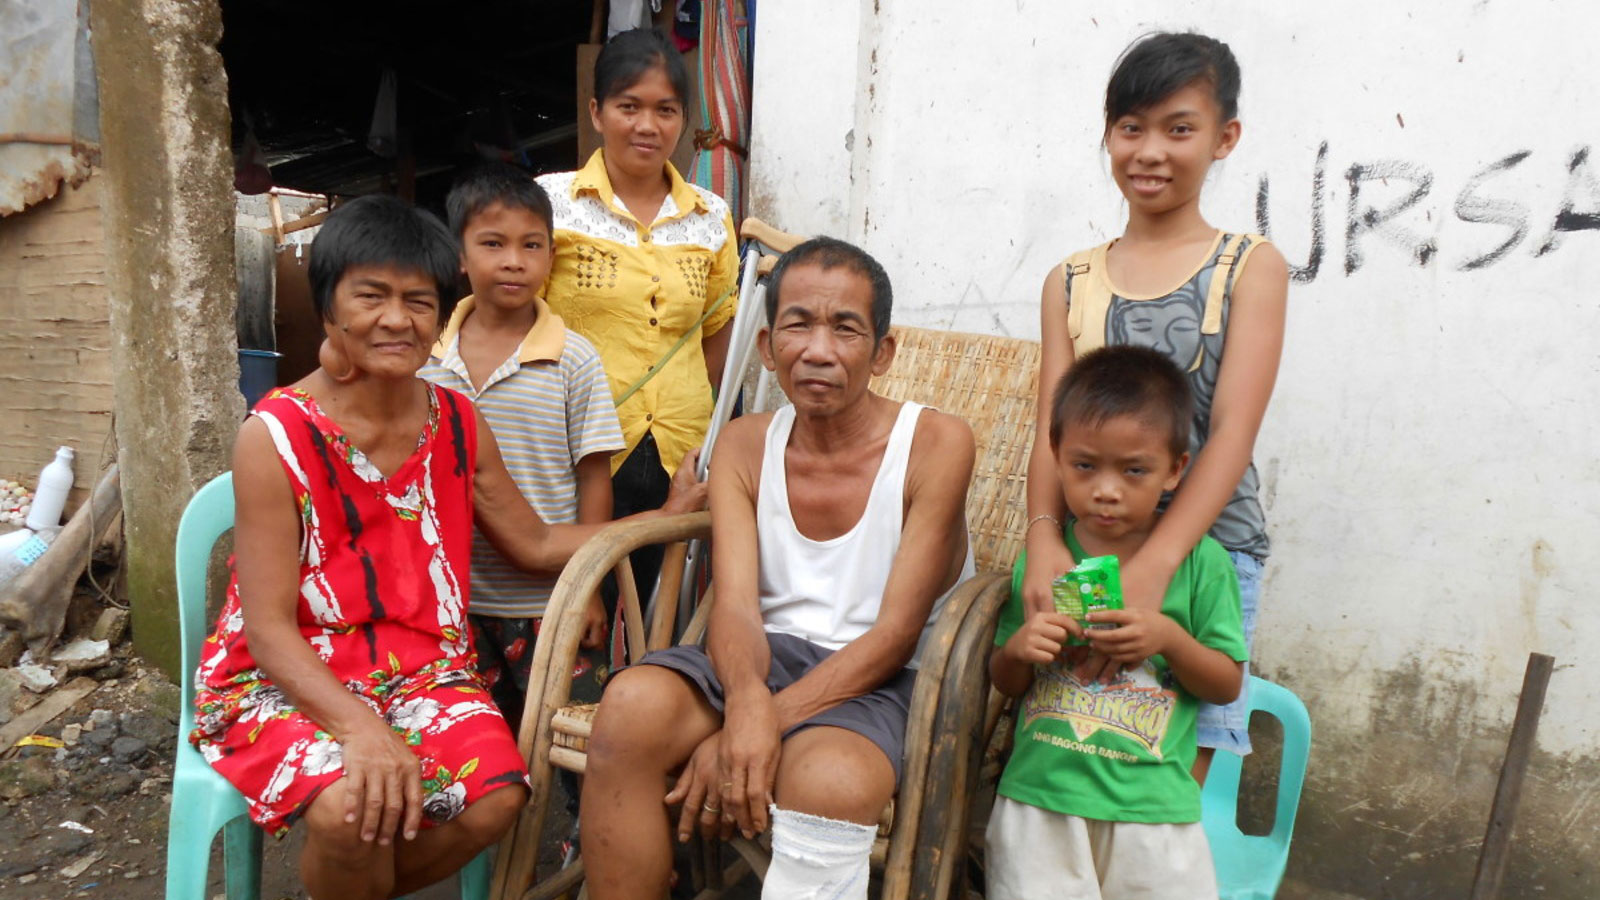 Philippines | Remembering the tragedy of Typhoon Haiyan